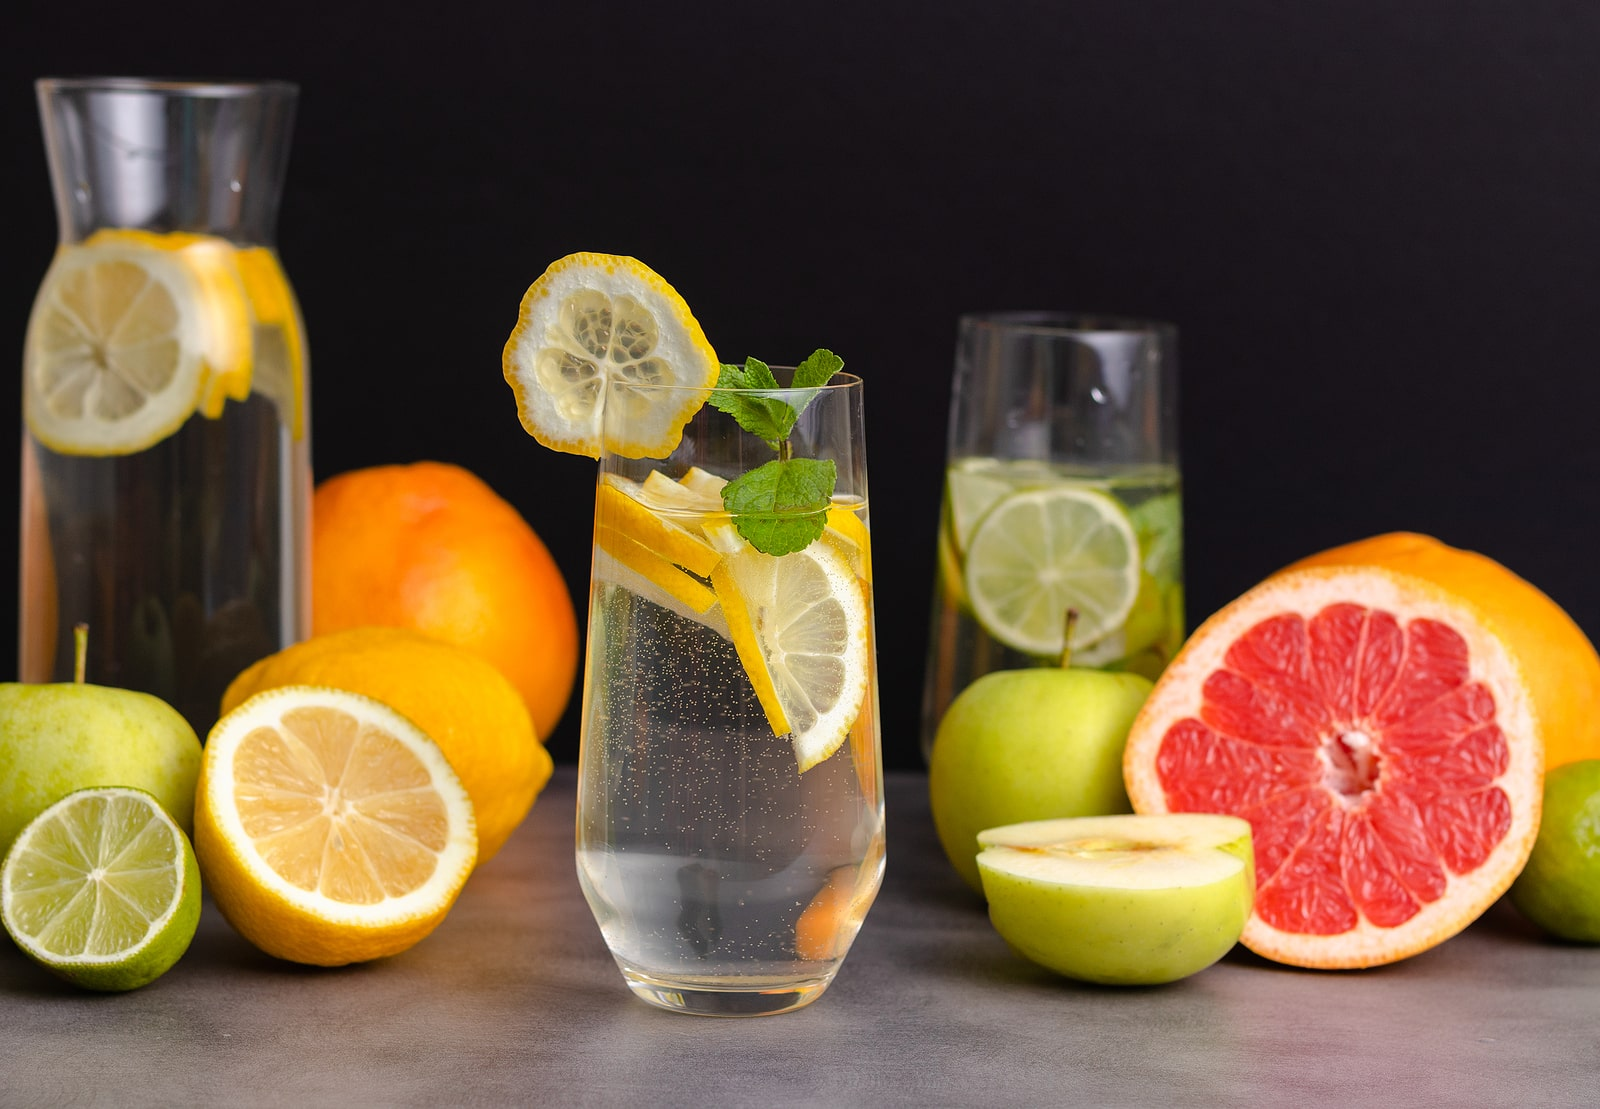 Glass of detox water with lemon slices